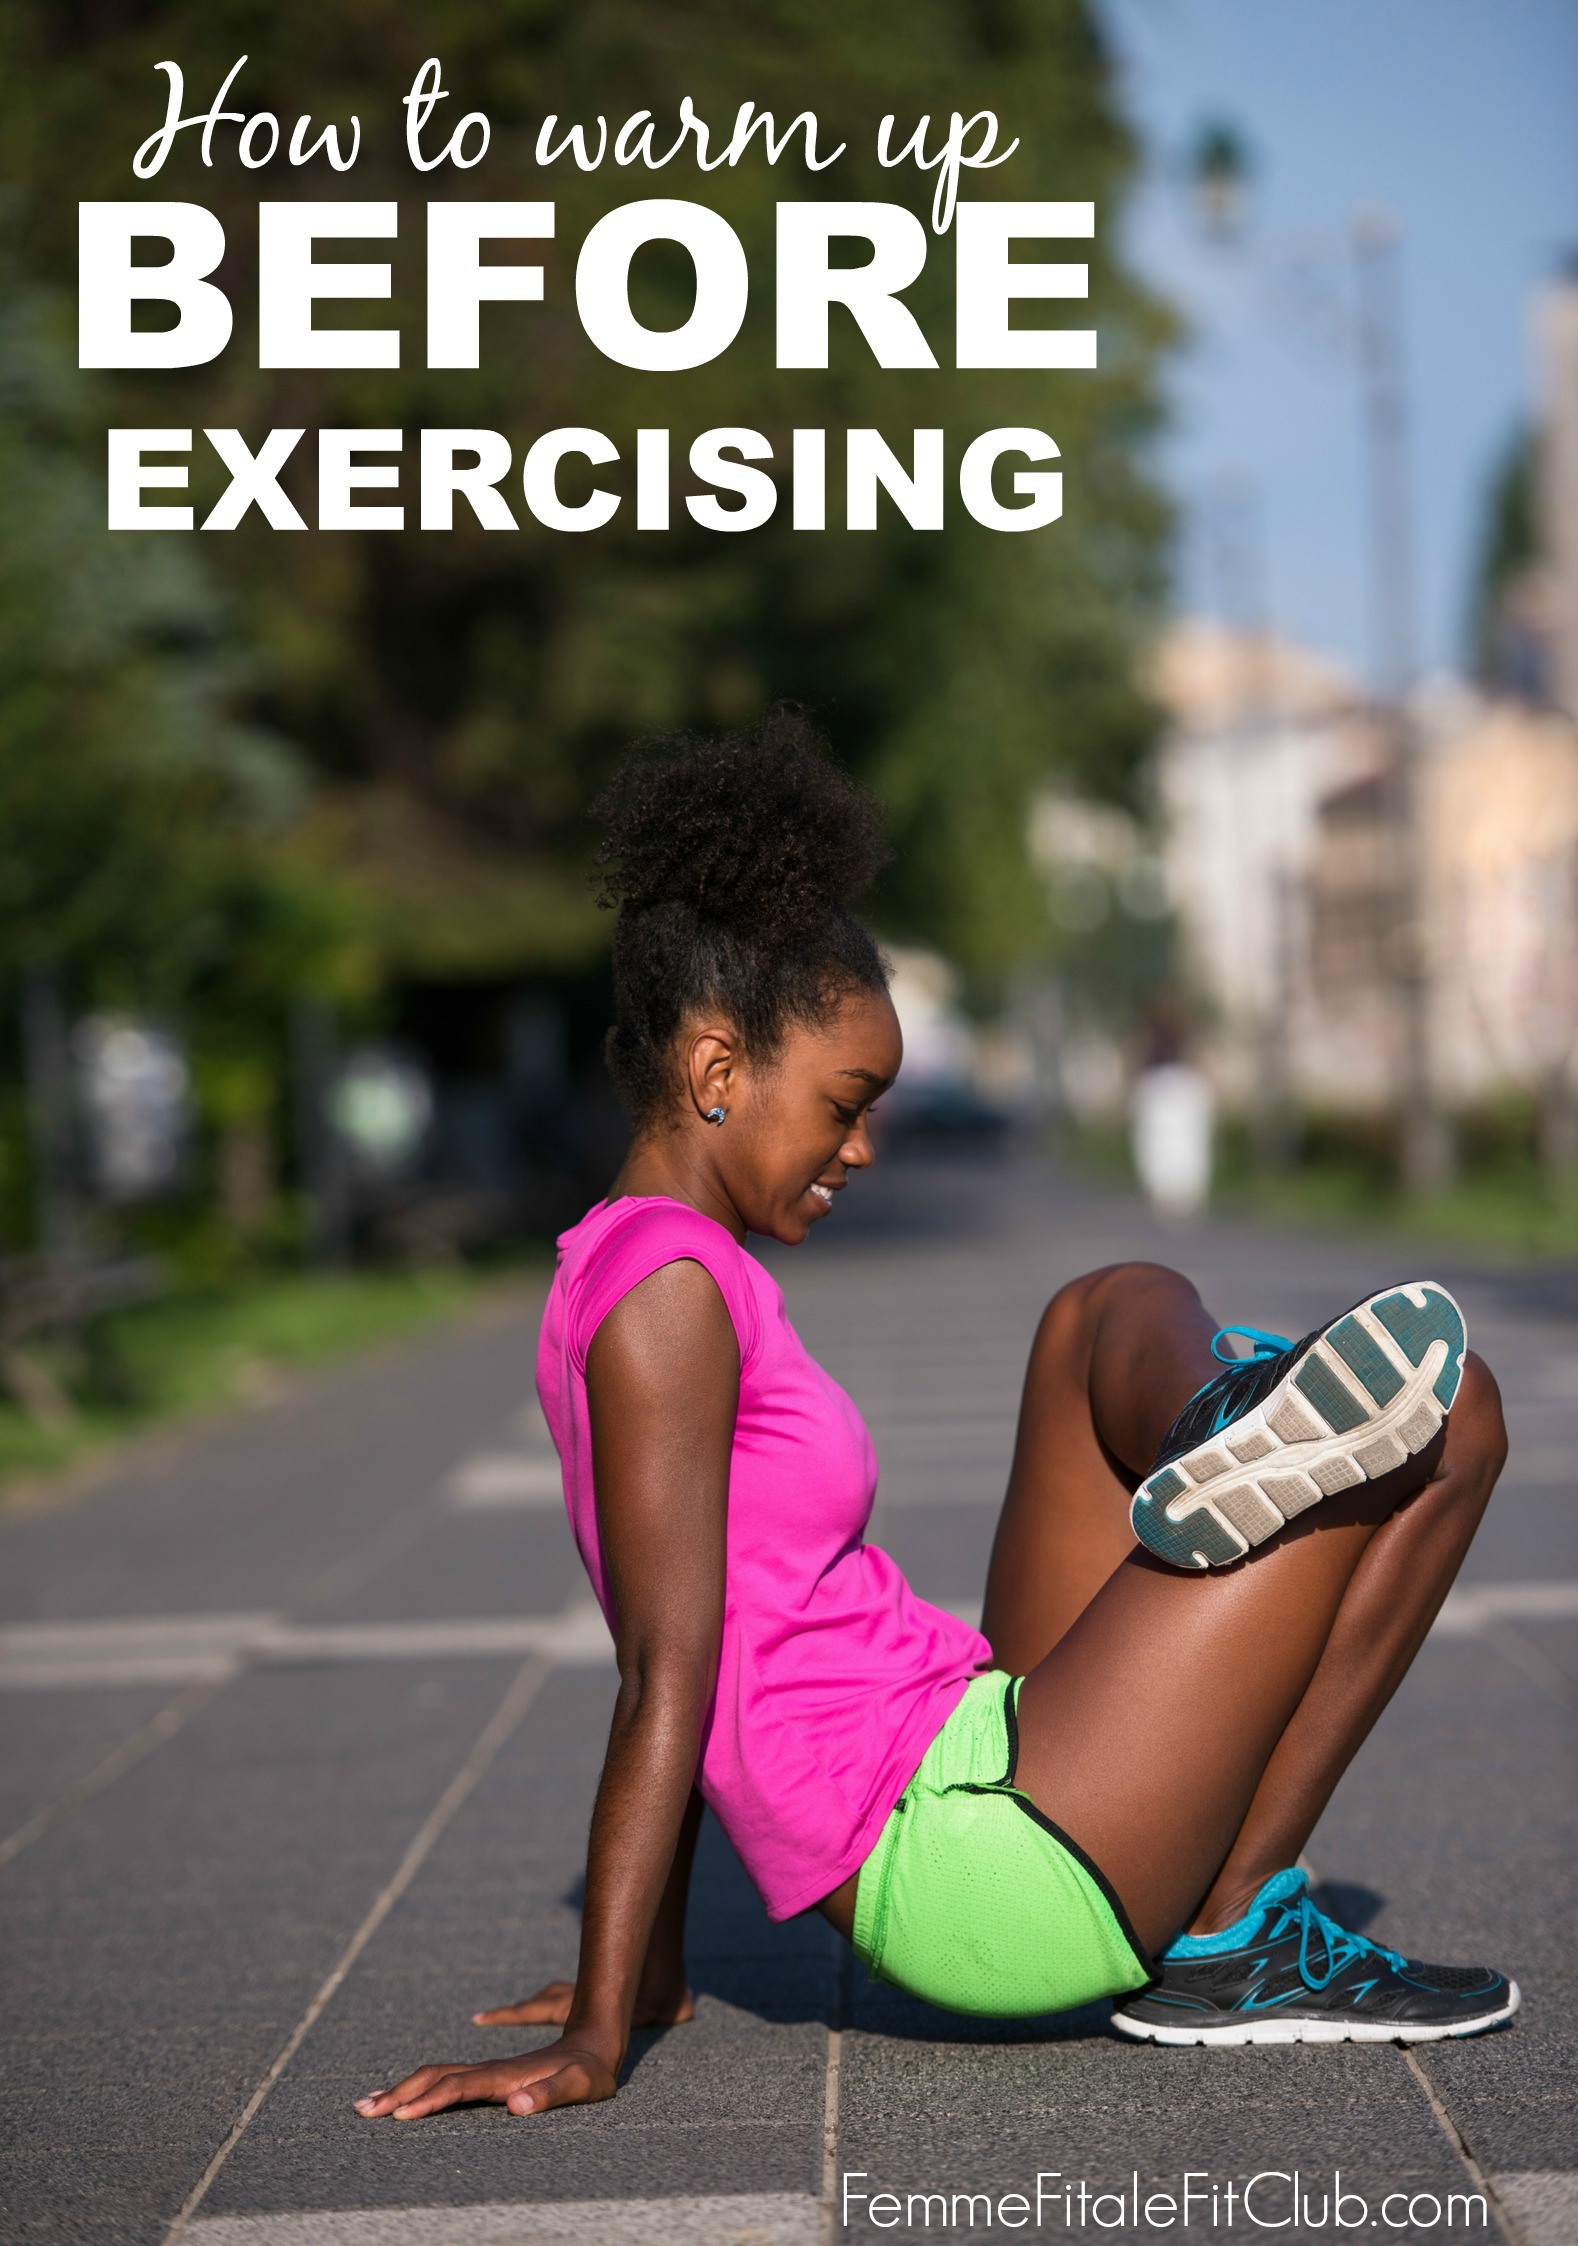 How to warm up before exercising